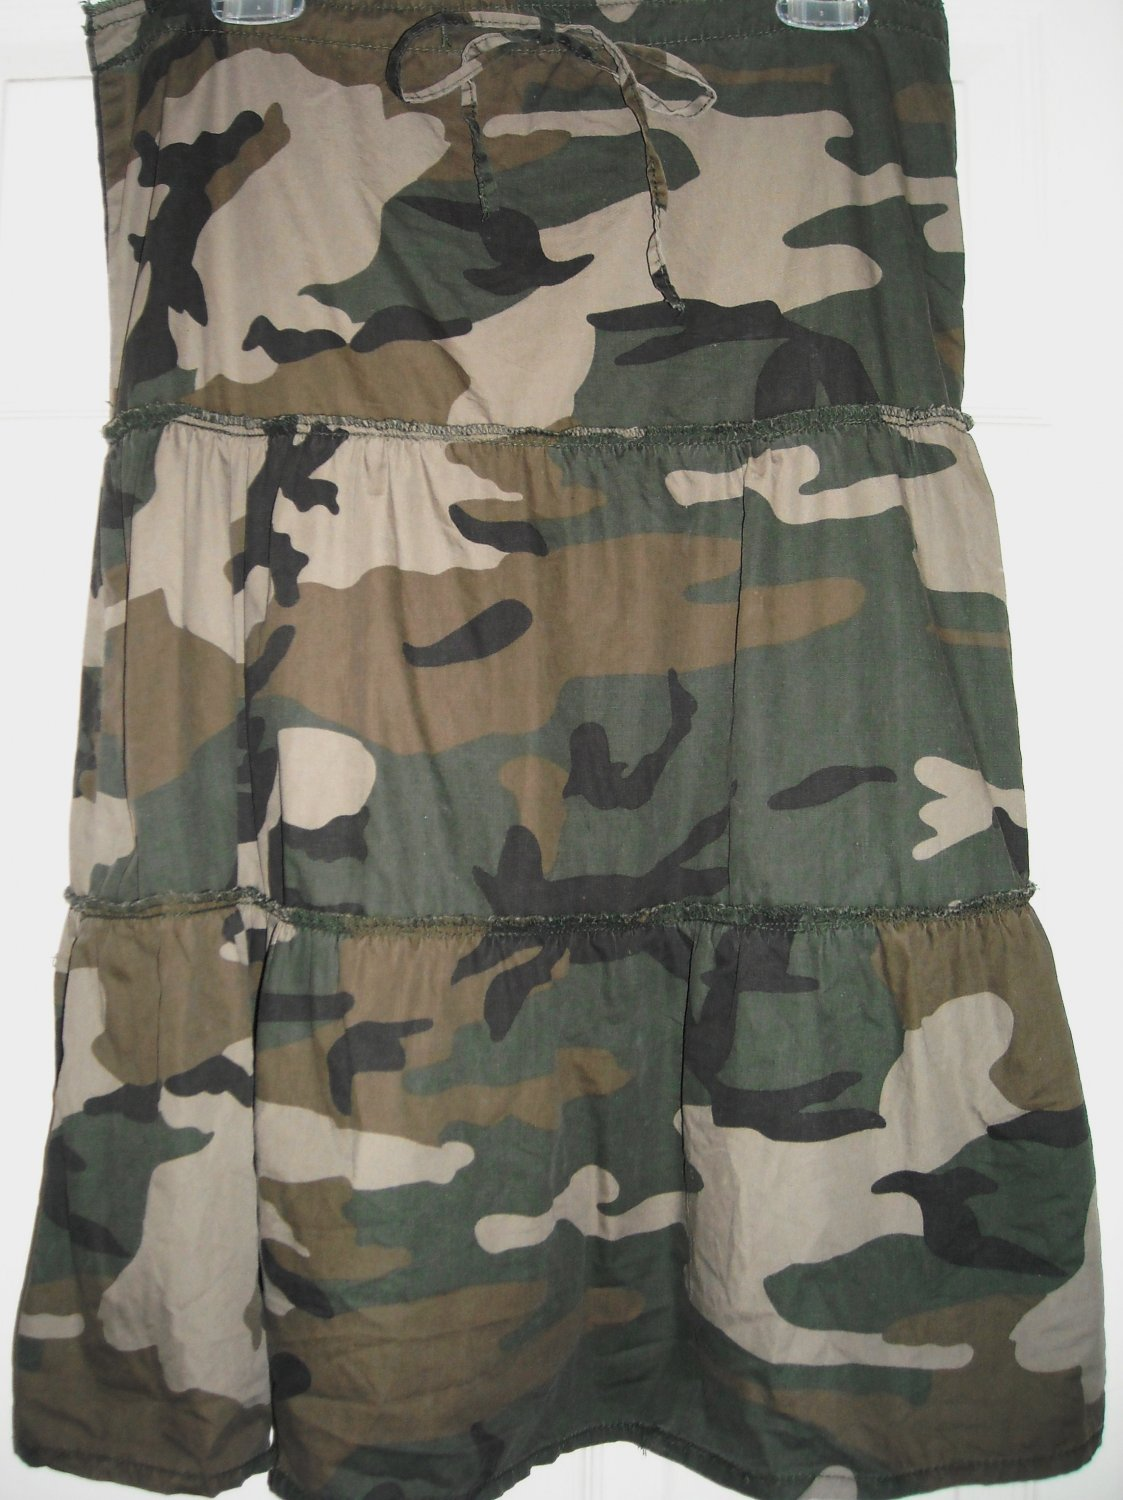 MOE GREEN CAMOUFLAGE SKIRT SIZE S